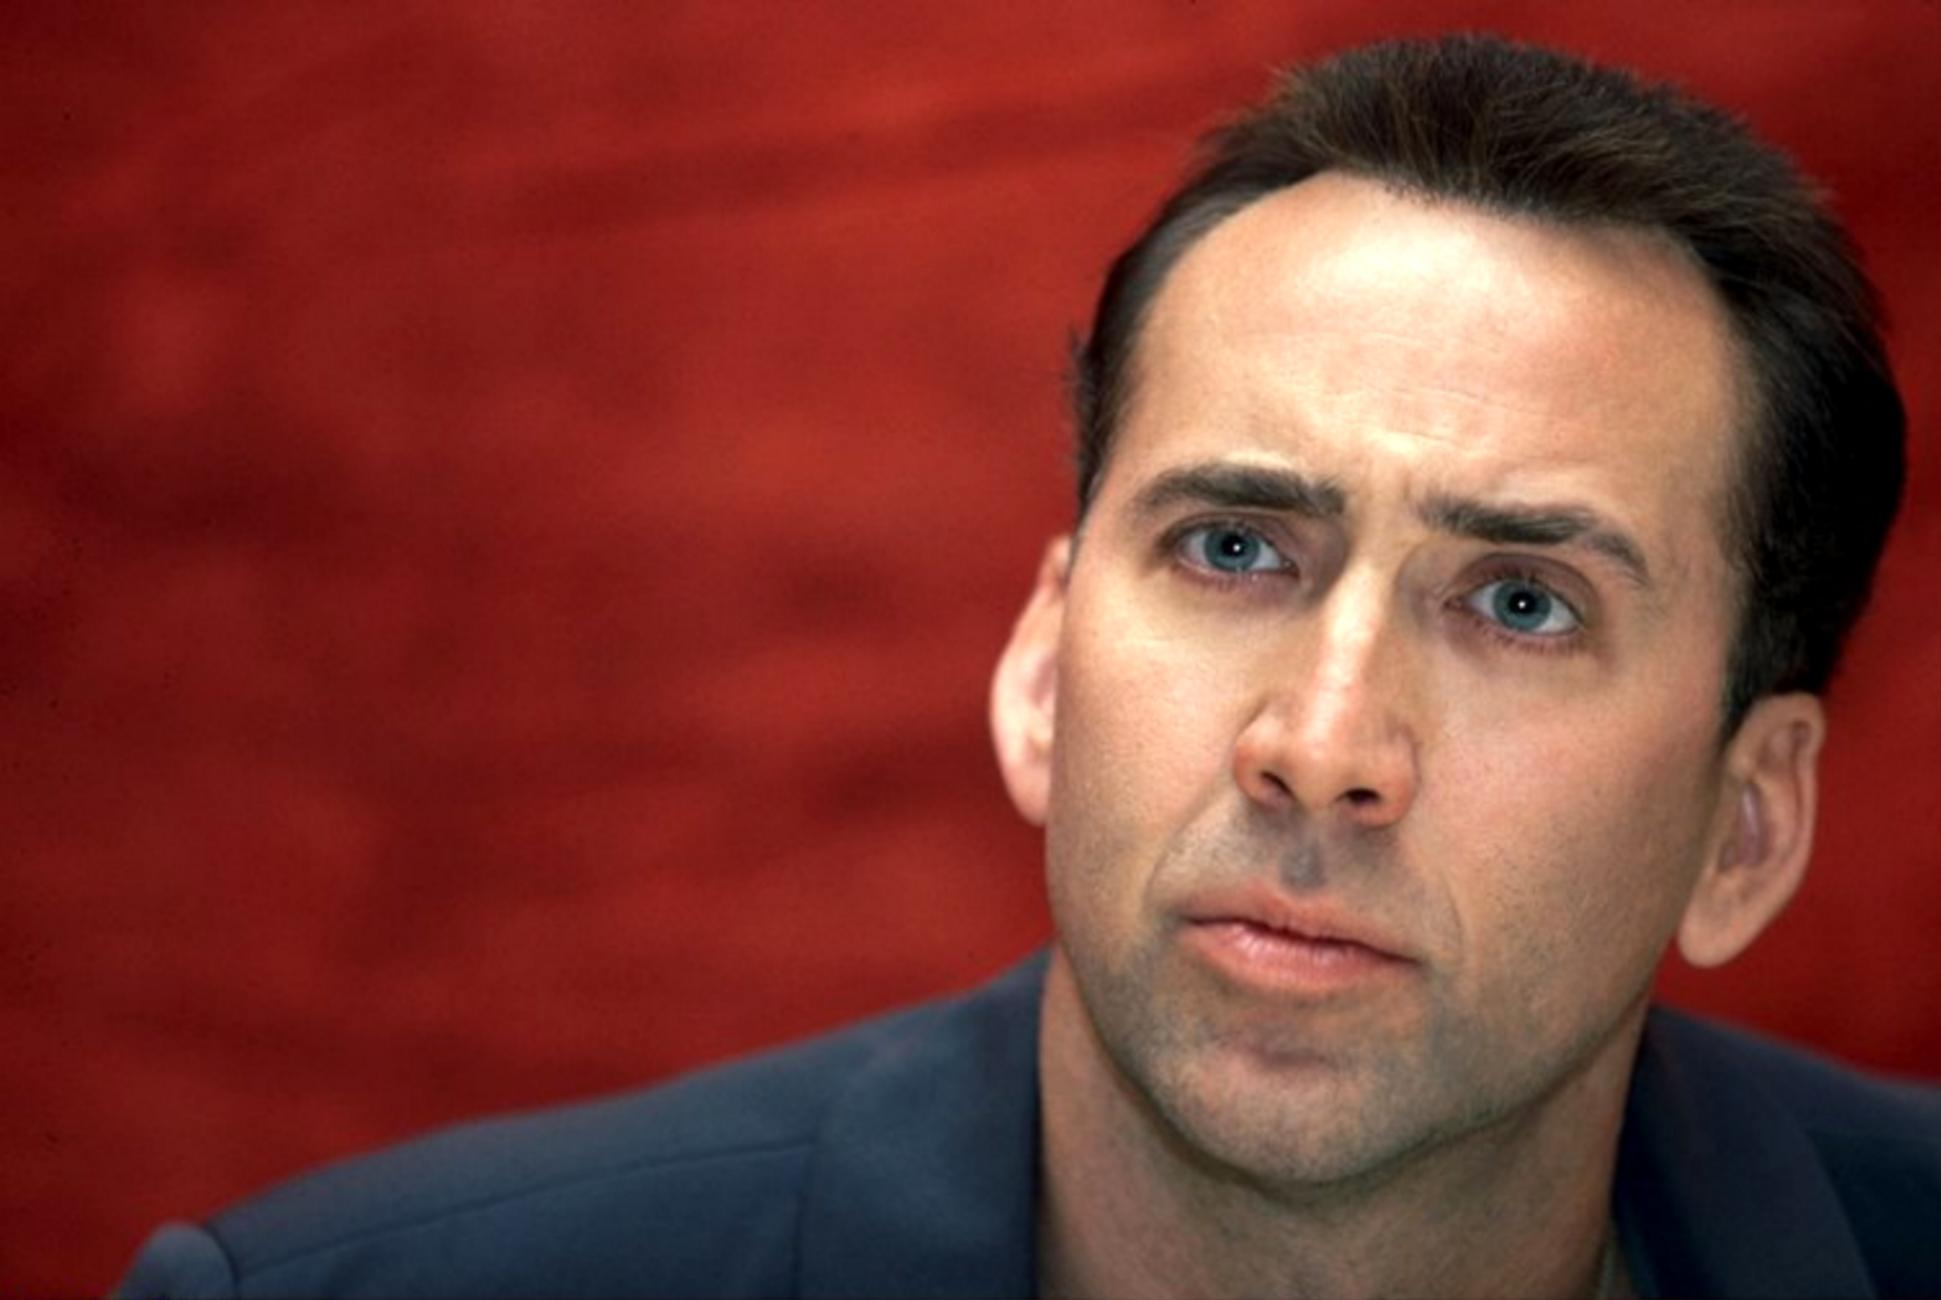 Nicolas Cage hd wallpaper Wallpaper